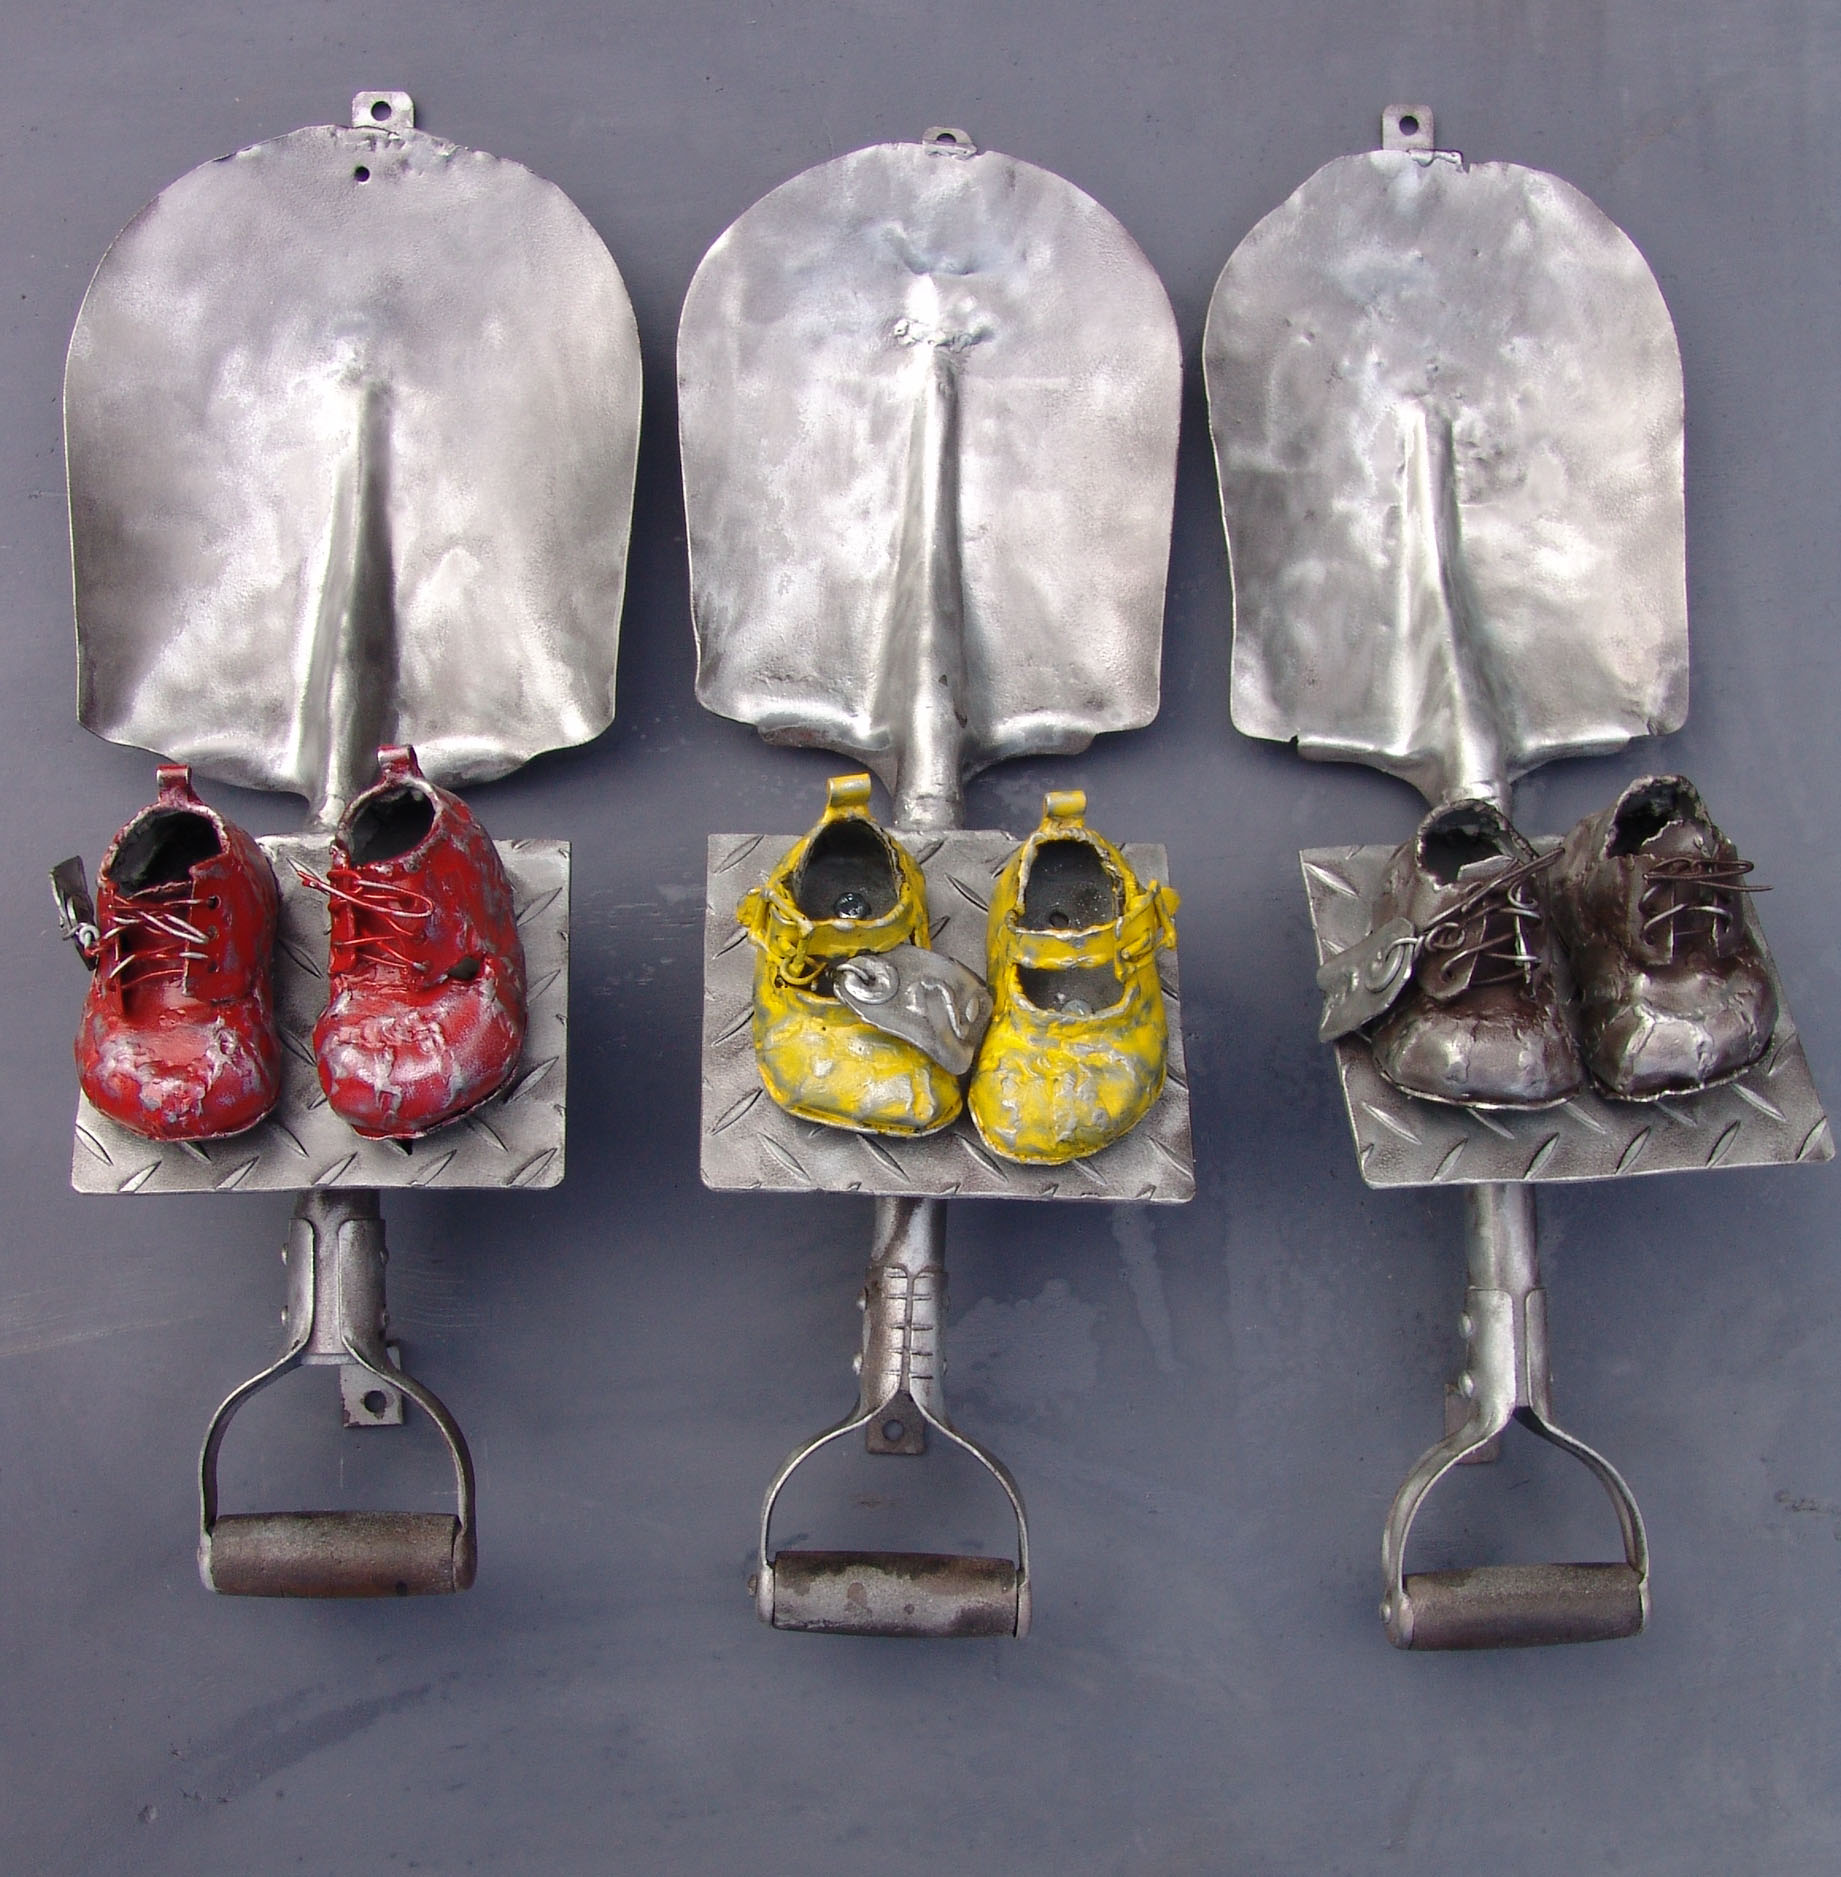 "Willie Bester, ""The Missing Ones"", 2008, metal, cm 67x26x3, L'ARIETE artecontemporanea Bologna"